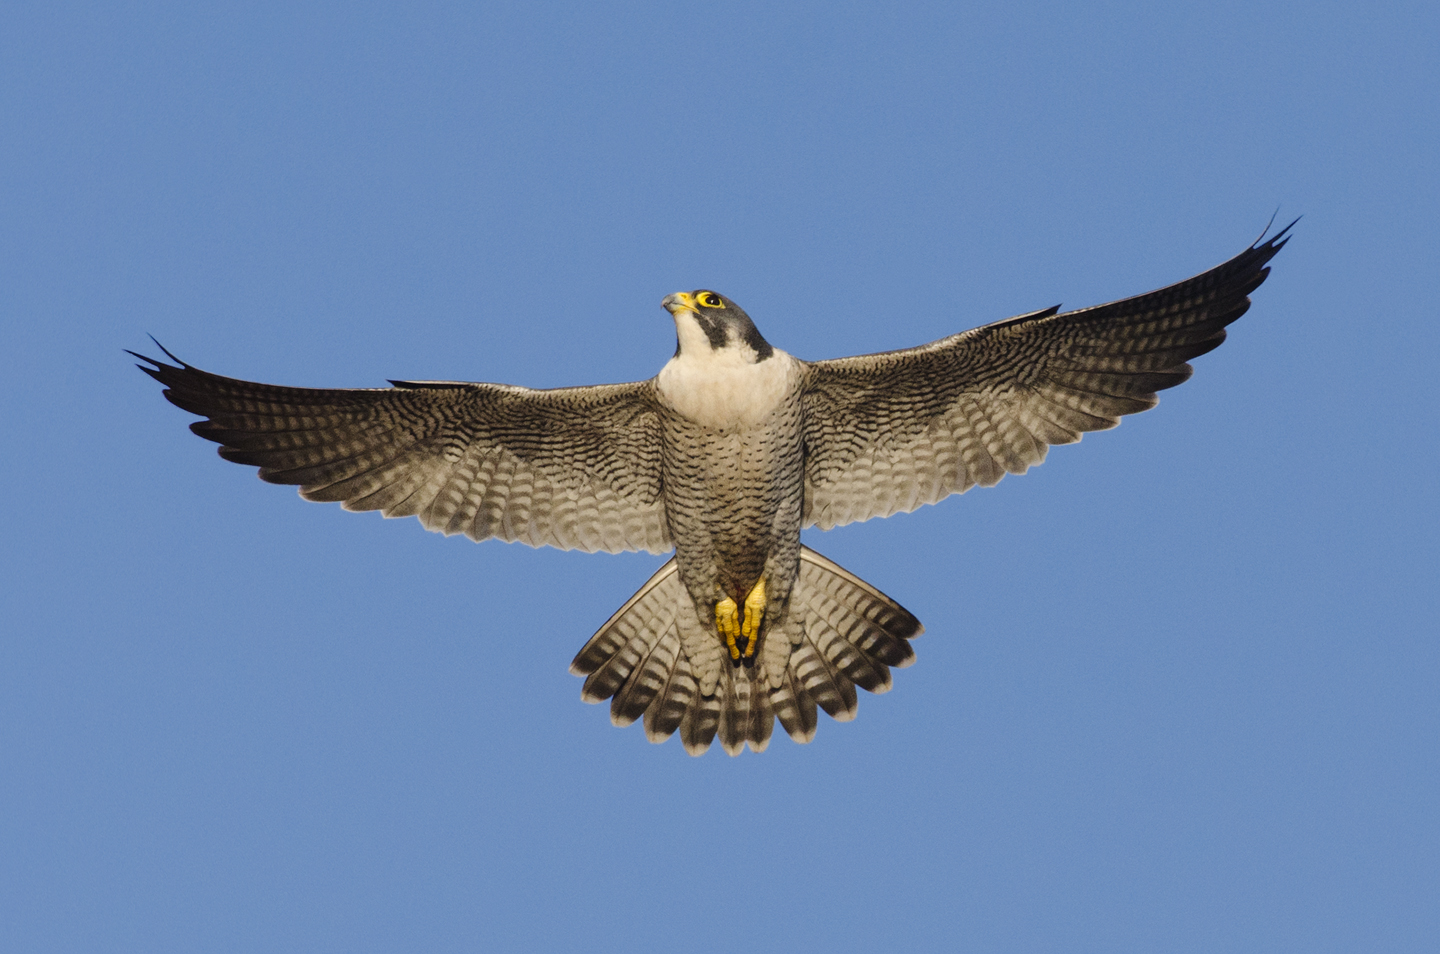 The year starts with flight displays by the tiercel to impress the female. Flight and ledge displays, prey-transfers and other courtship rituals are important in pair bonding